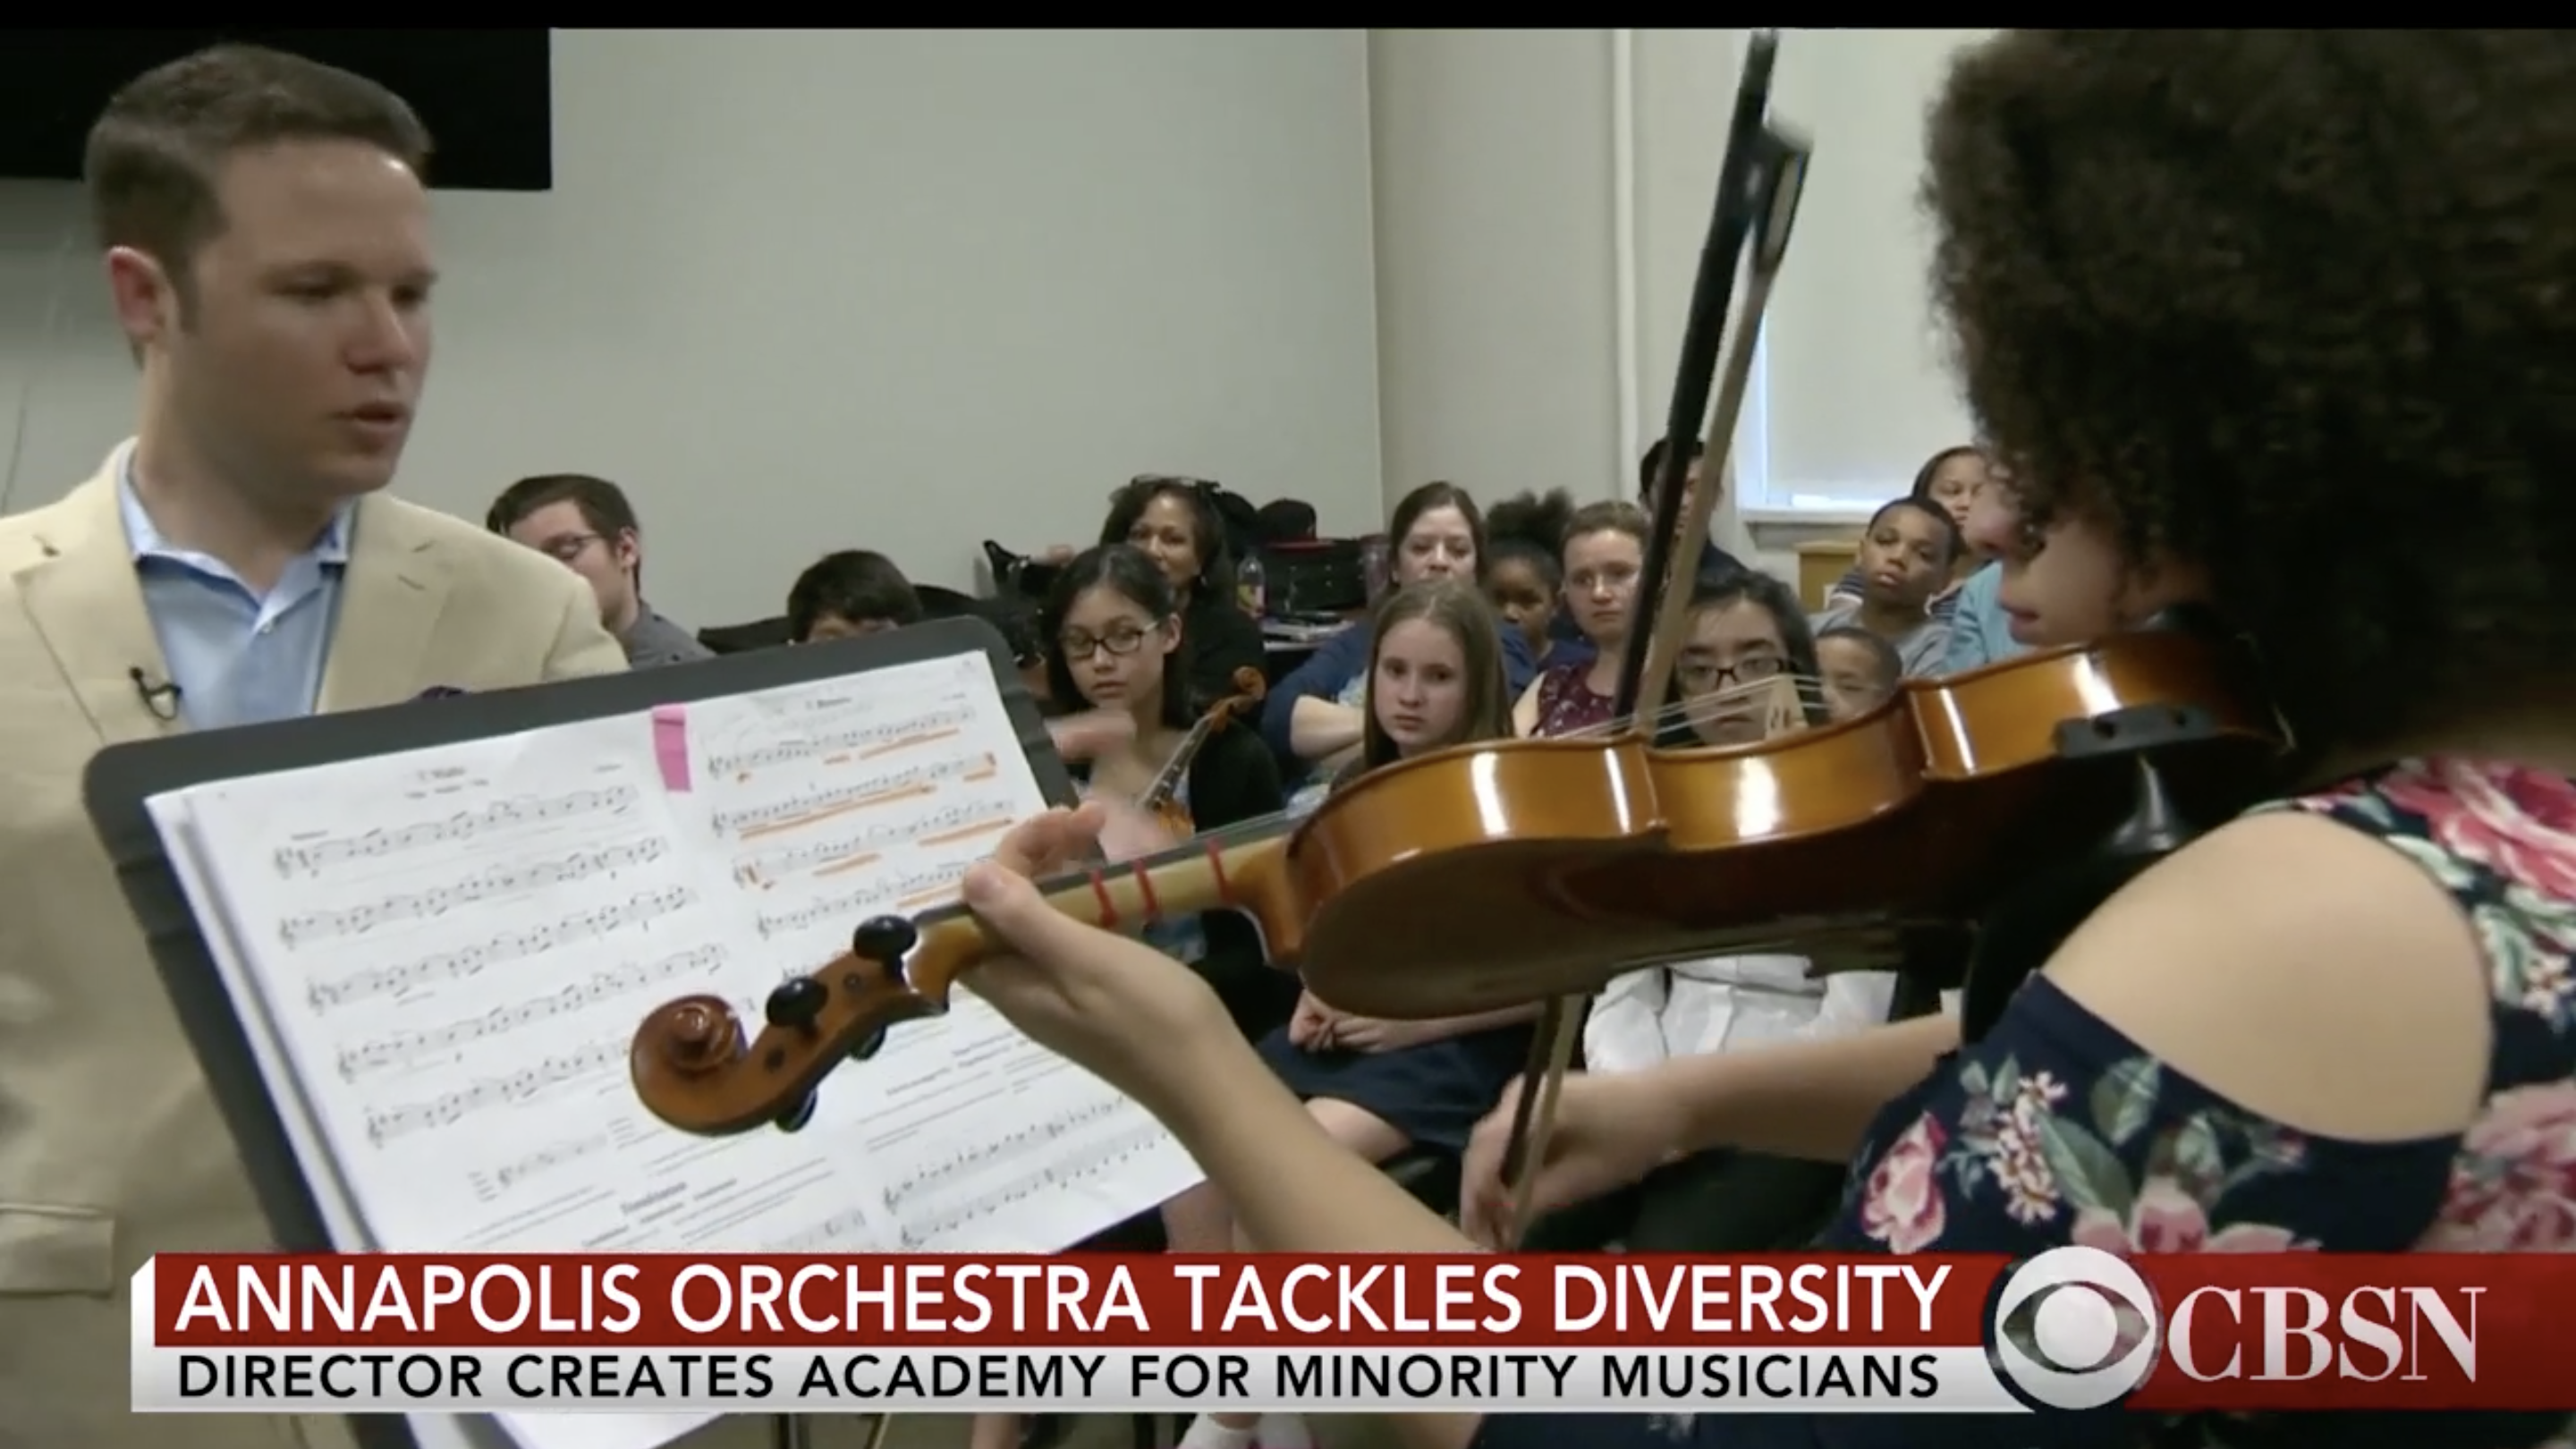 Annapolis orchestra diversity